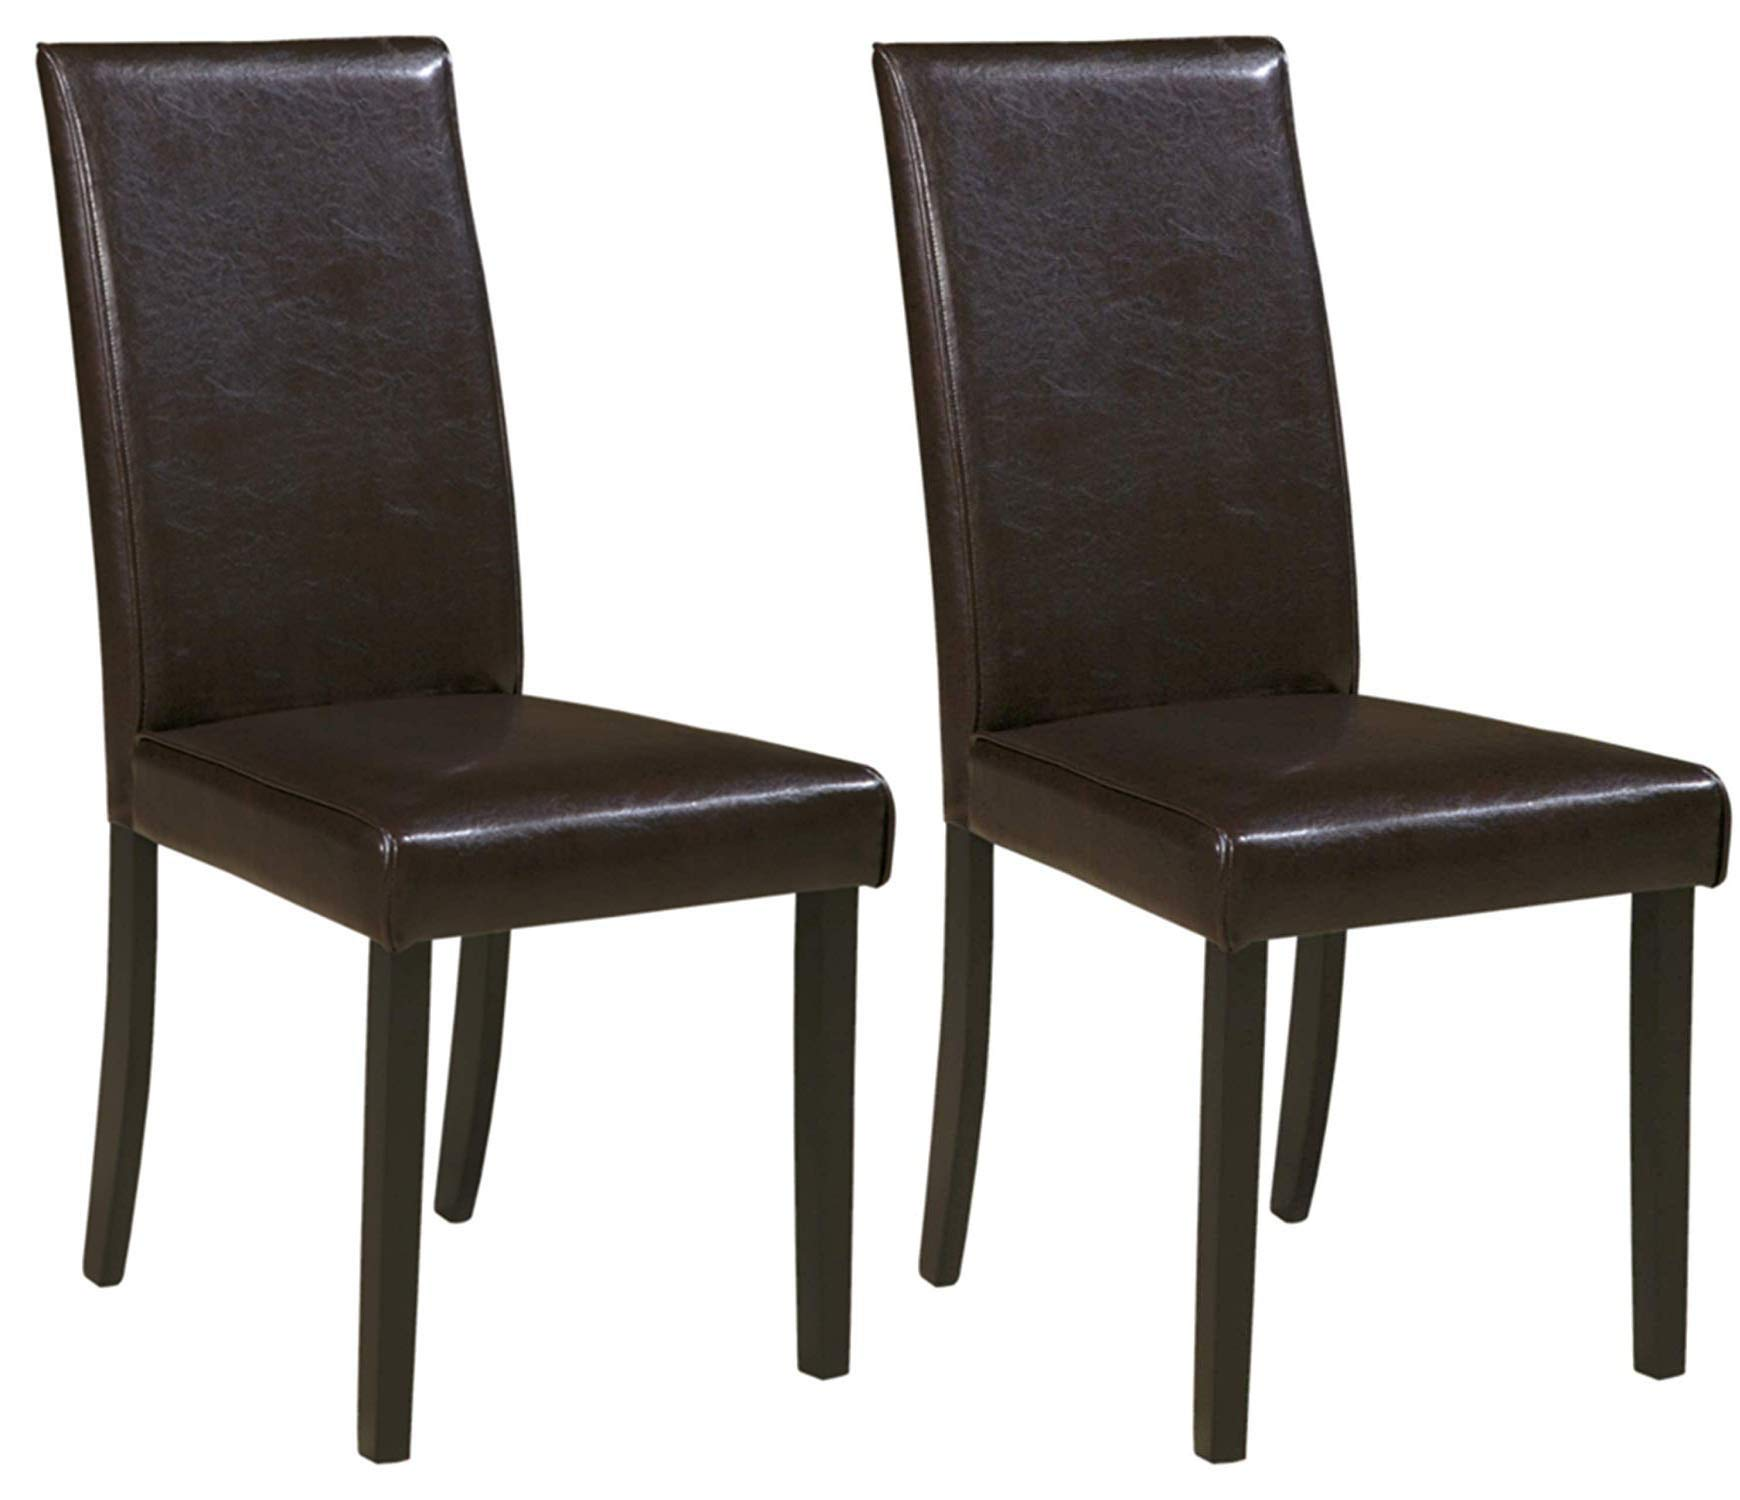 Ashley Furniture Signature Design - Kimonte Dining Room Chair - Contemporary - Set of 2 - Brown by Signature Design by Ashley